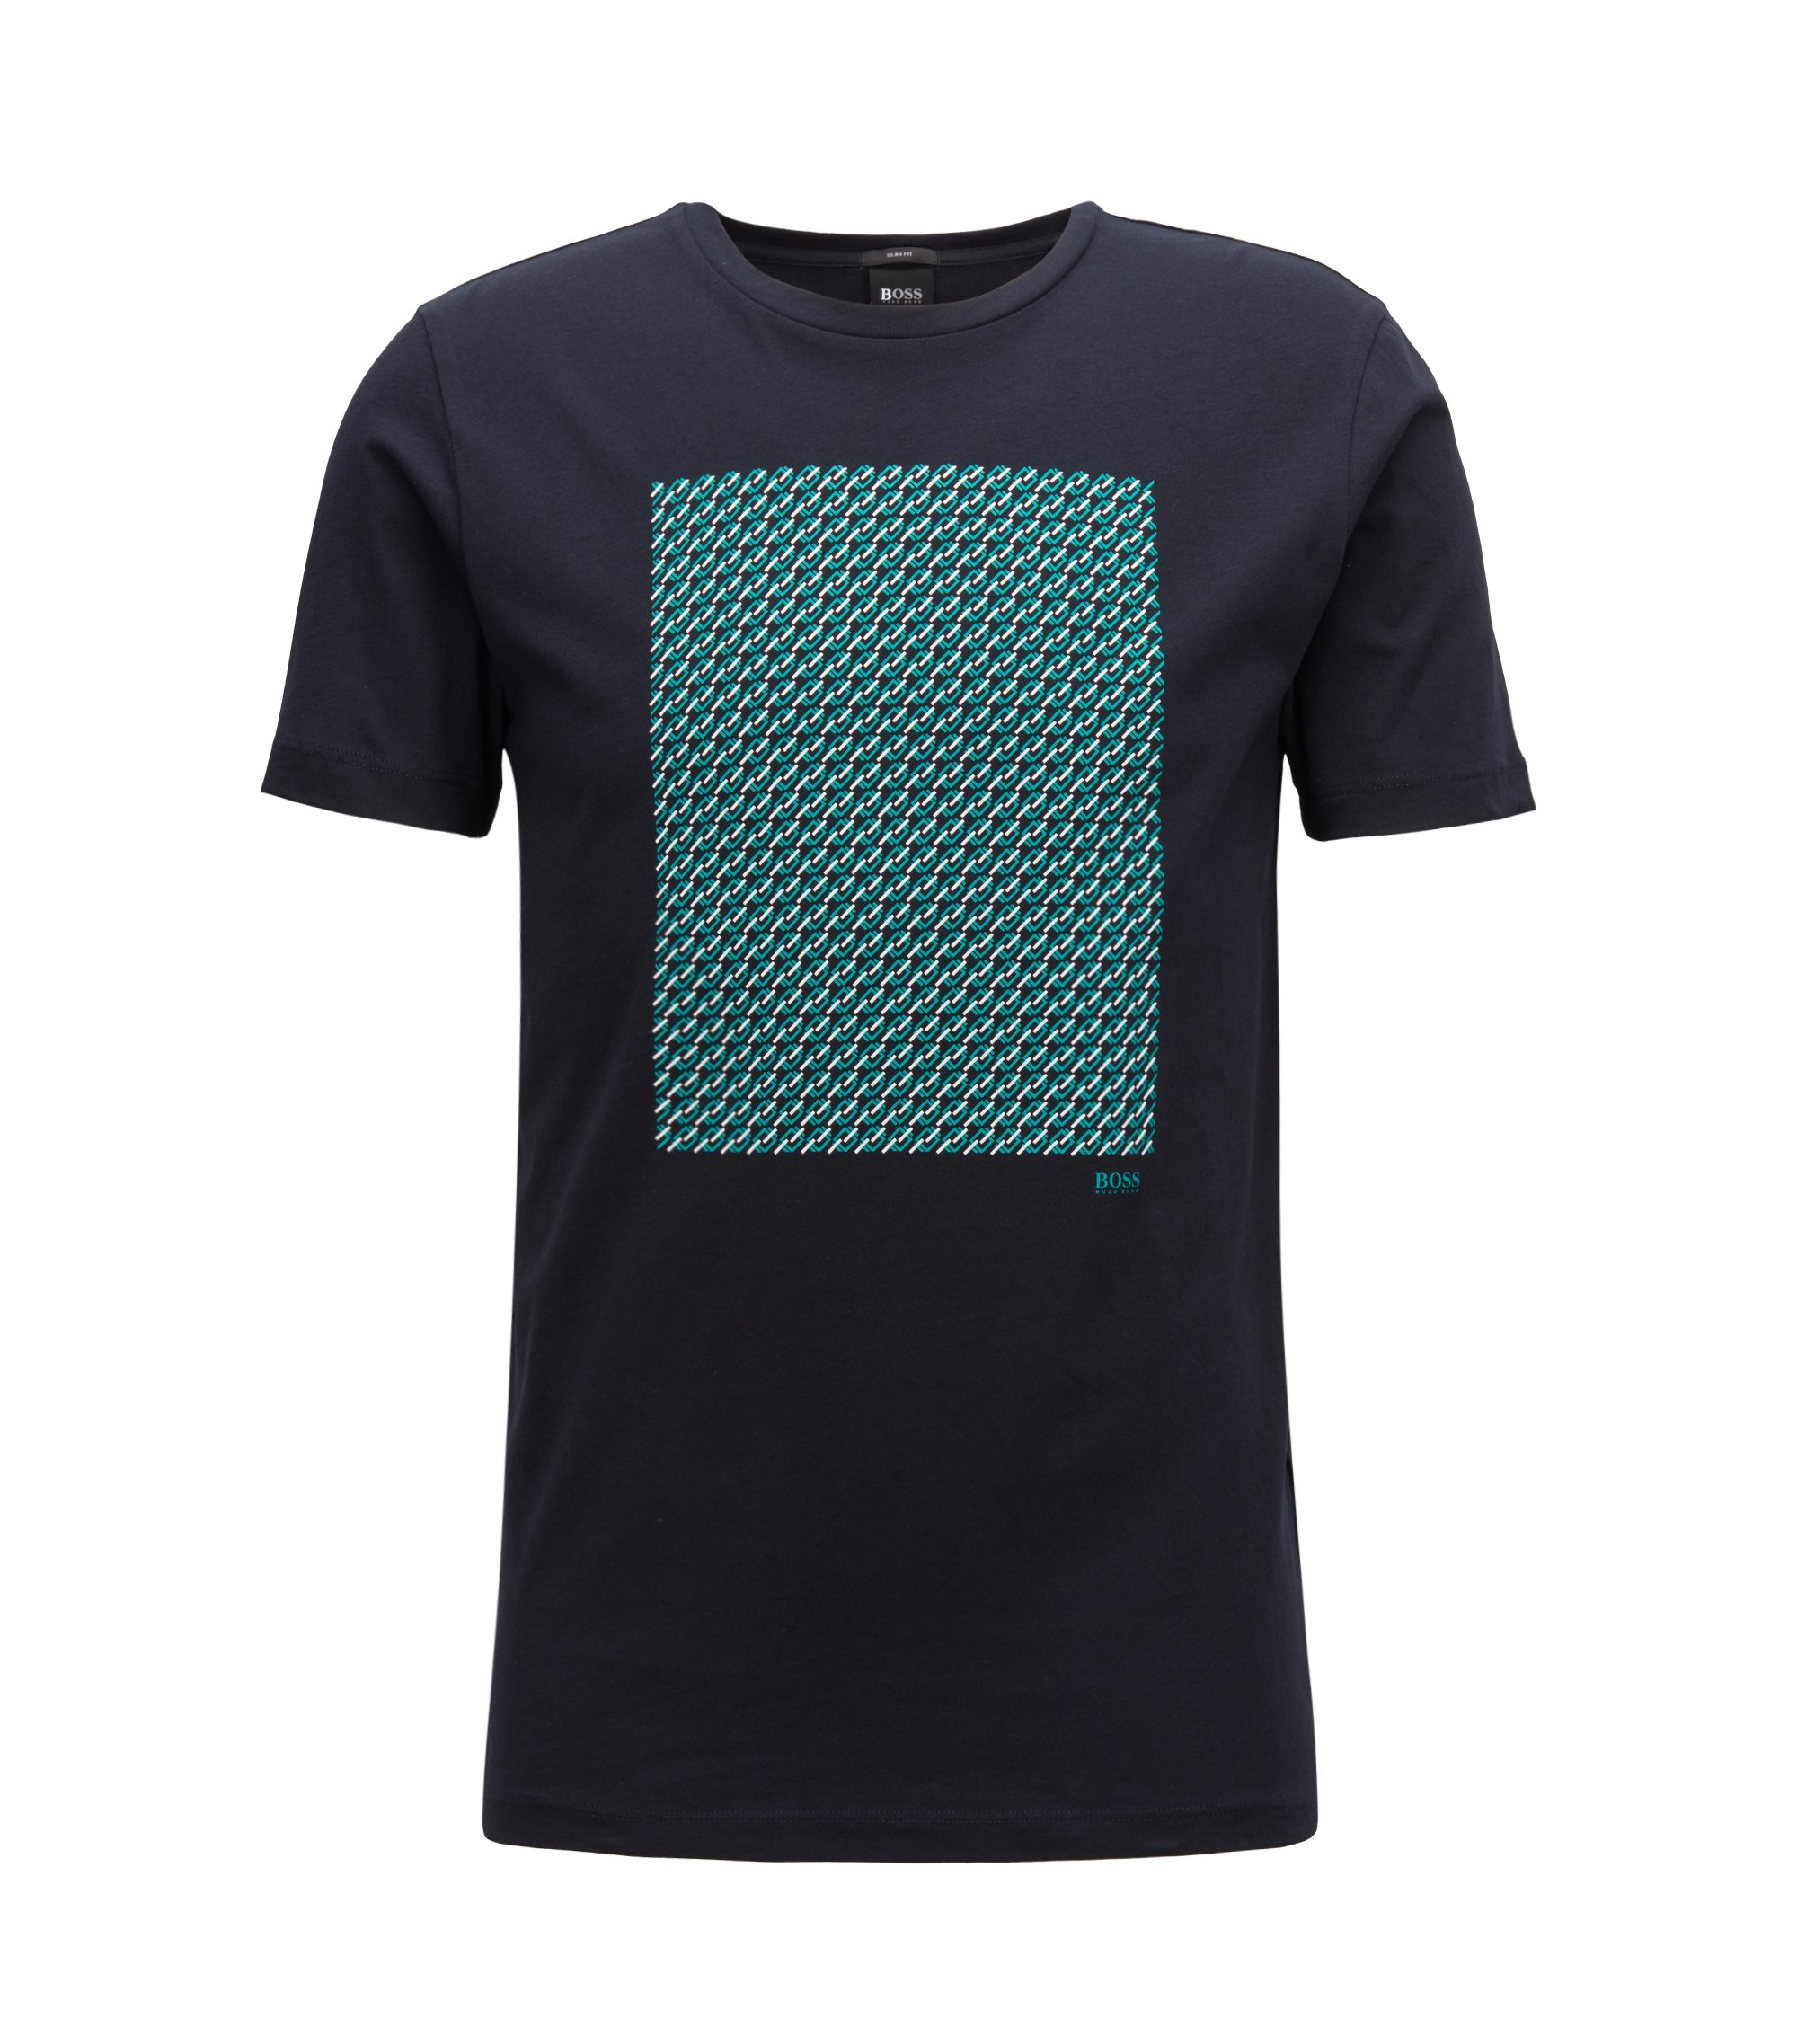 T-shirt imprimé Slim Fit en jersey simple de coton, Bleu